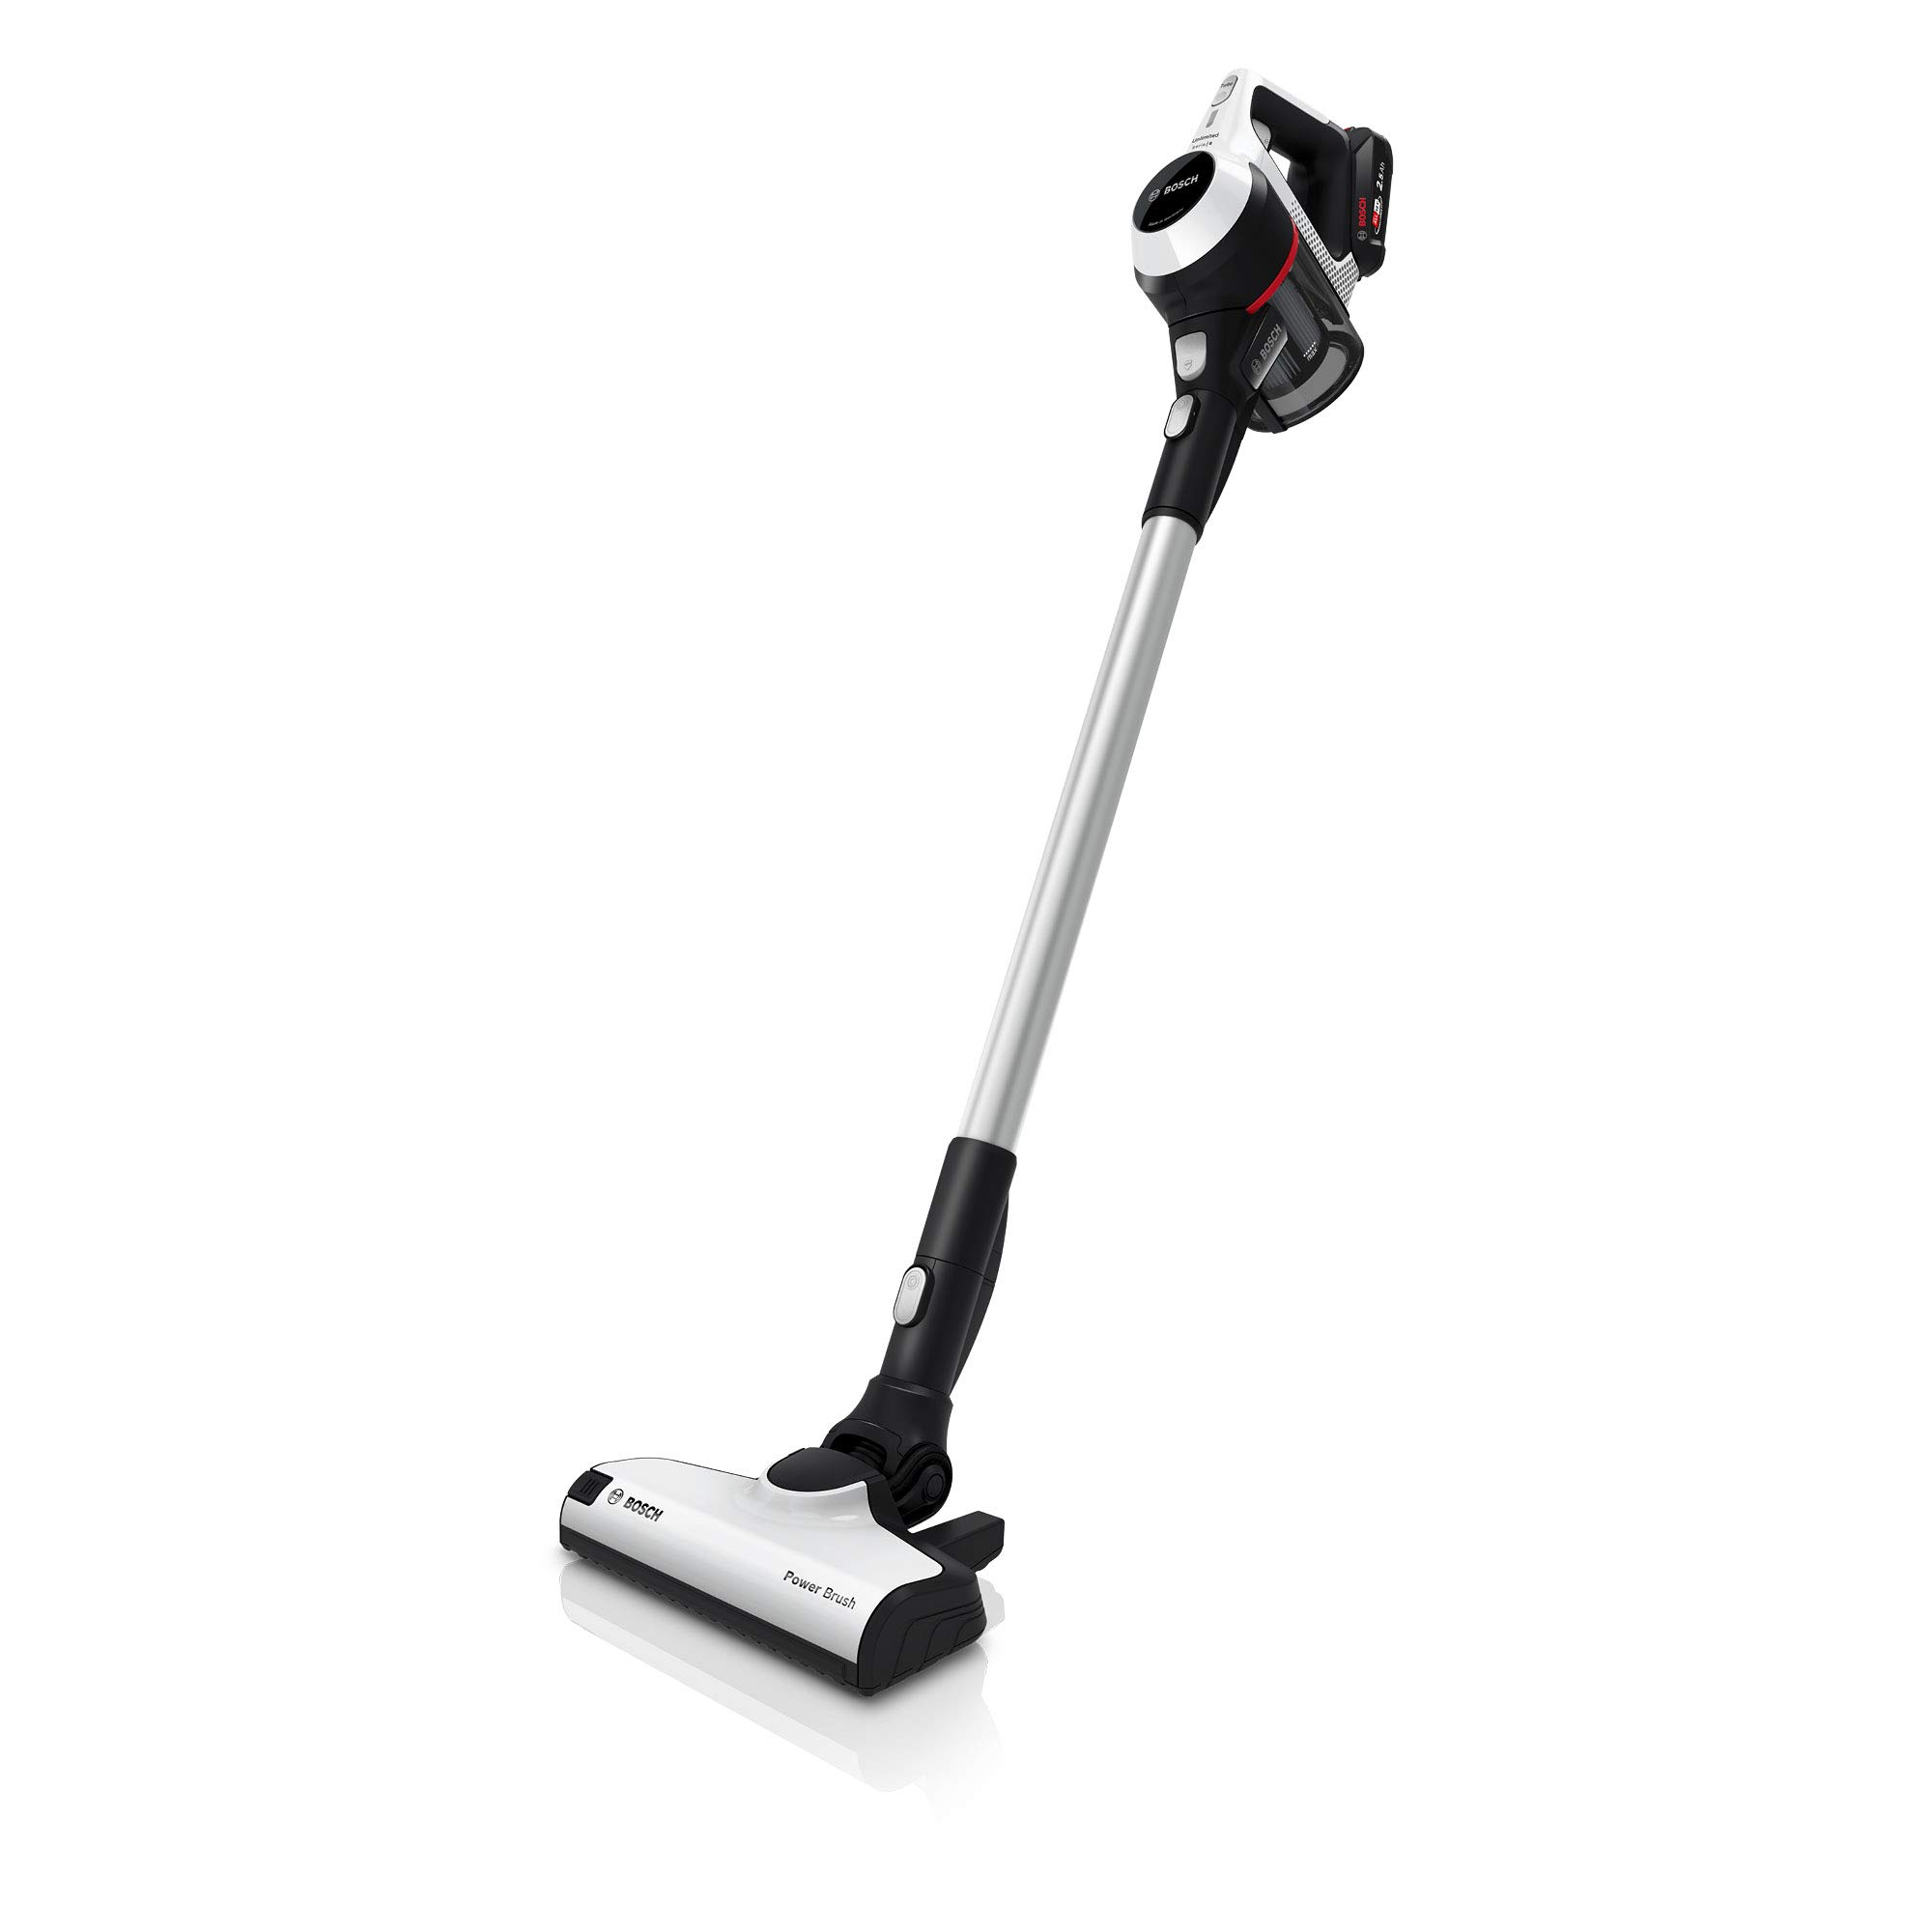 Bosch Unlimited Serie | 6 - Rechargeable Cordless & Lightweight Vacuum Cleaner for Multiple Surfaces with Two Battery Packs, Crevice Tool, Mattress Nozzle & Furniture & Upholstery Nozzles, in White